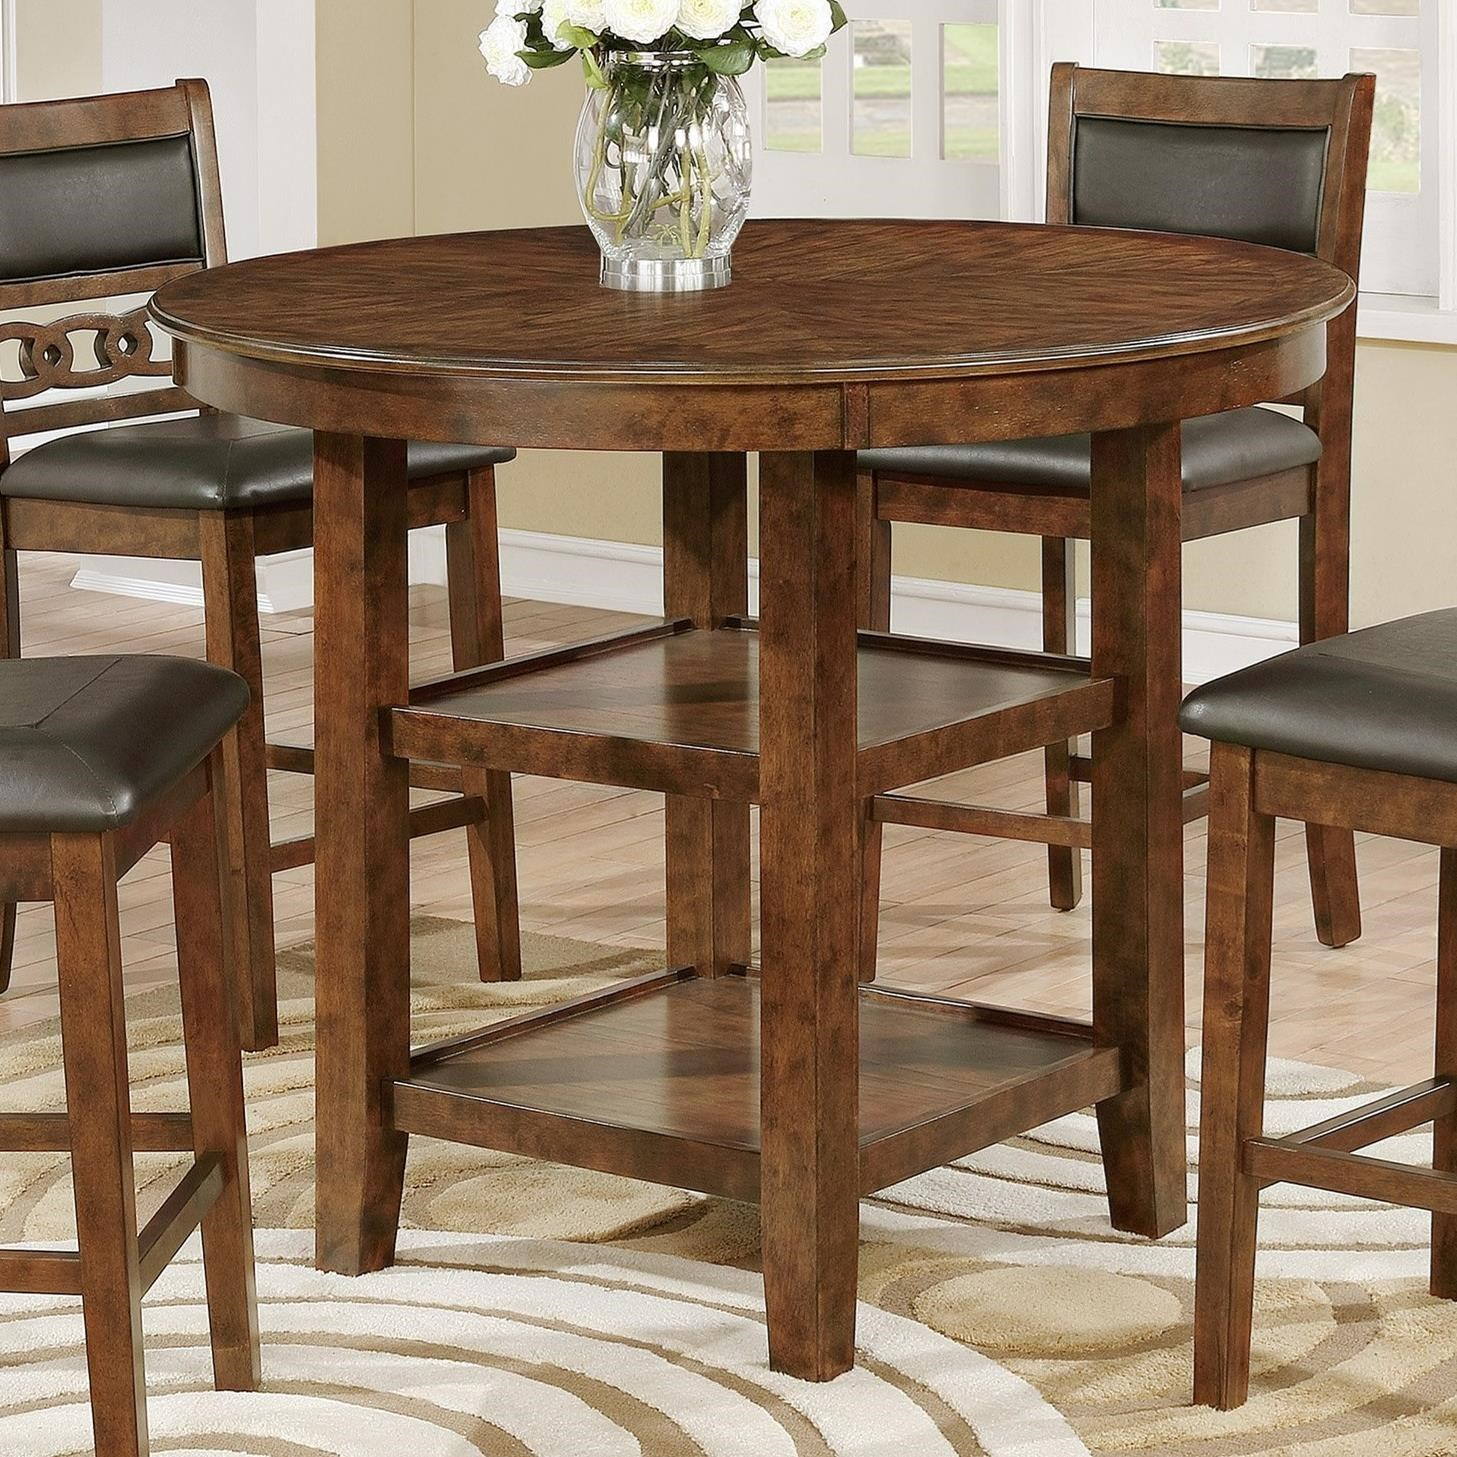 Dining Room Table With Storage: Del Sol CM Cally 2716T-42 Round Counter Height Table With